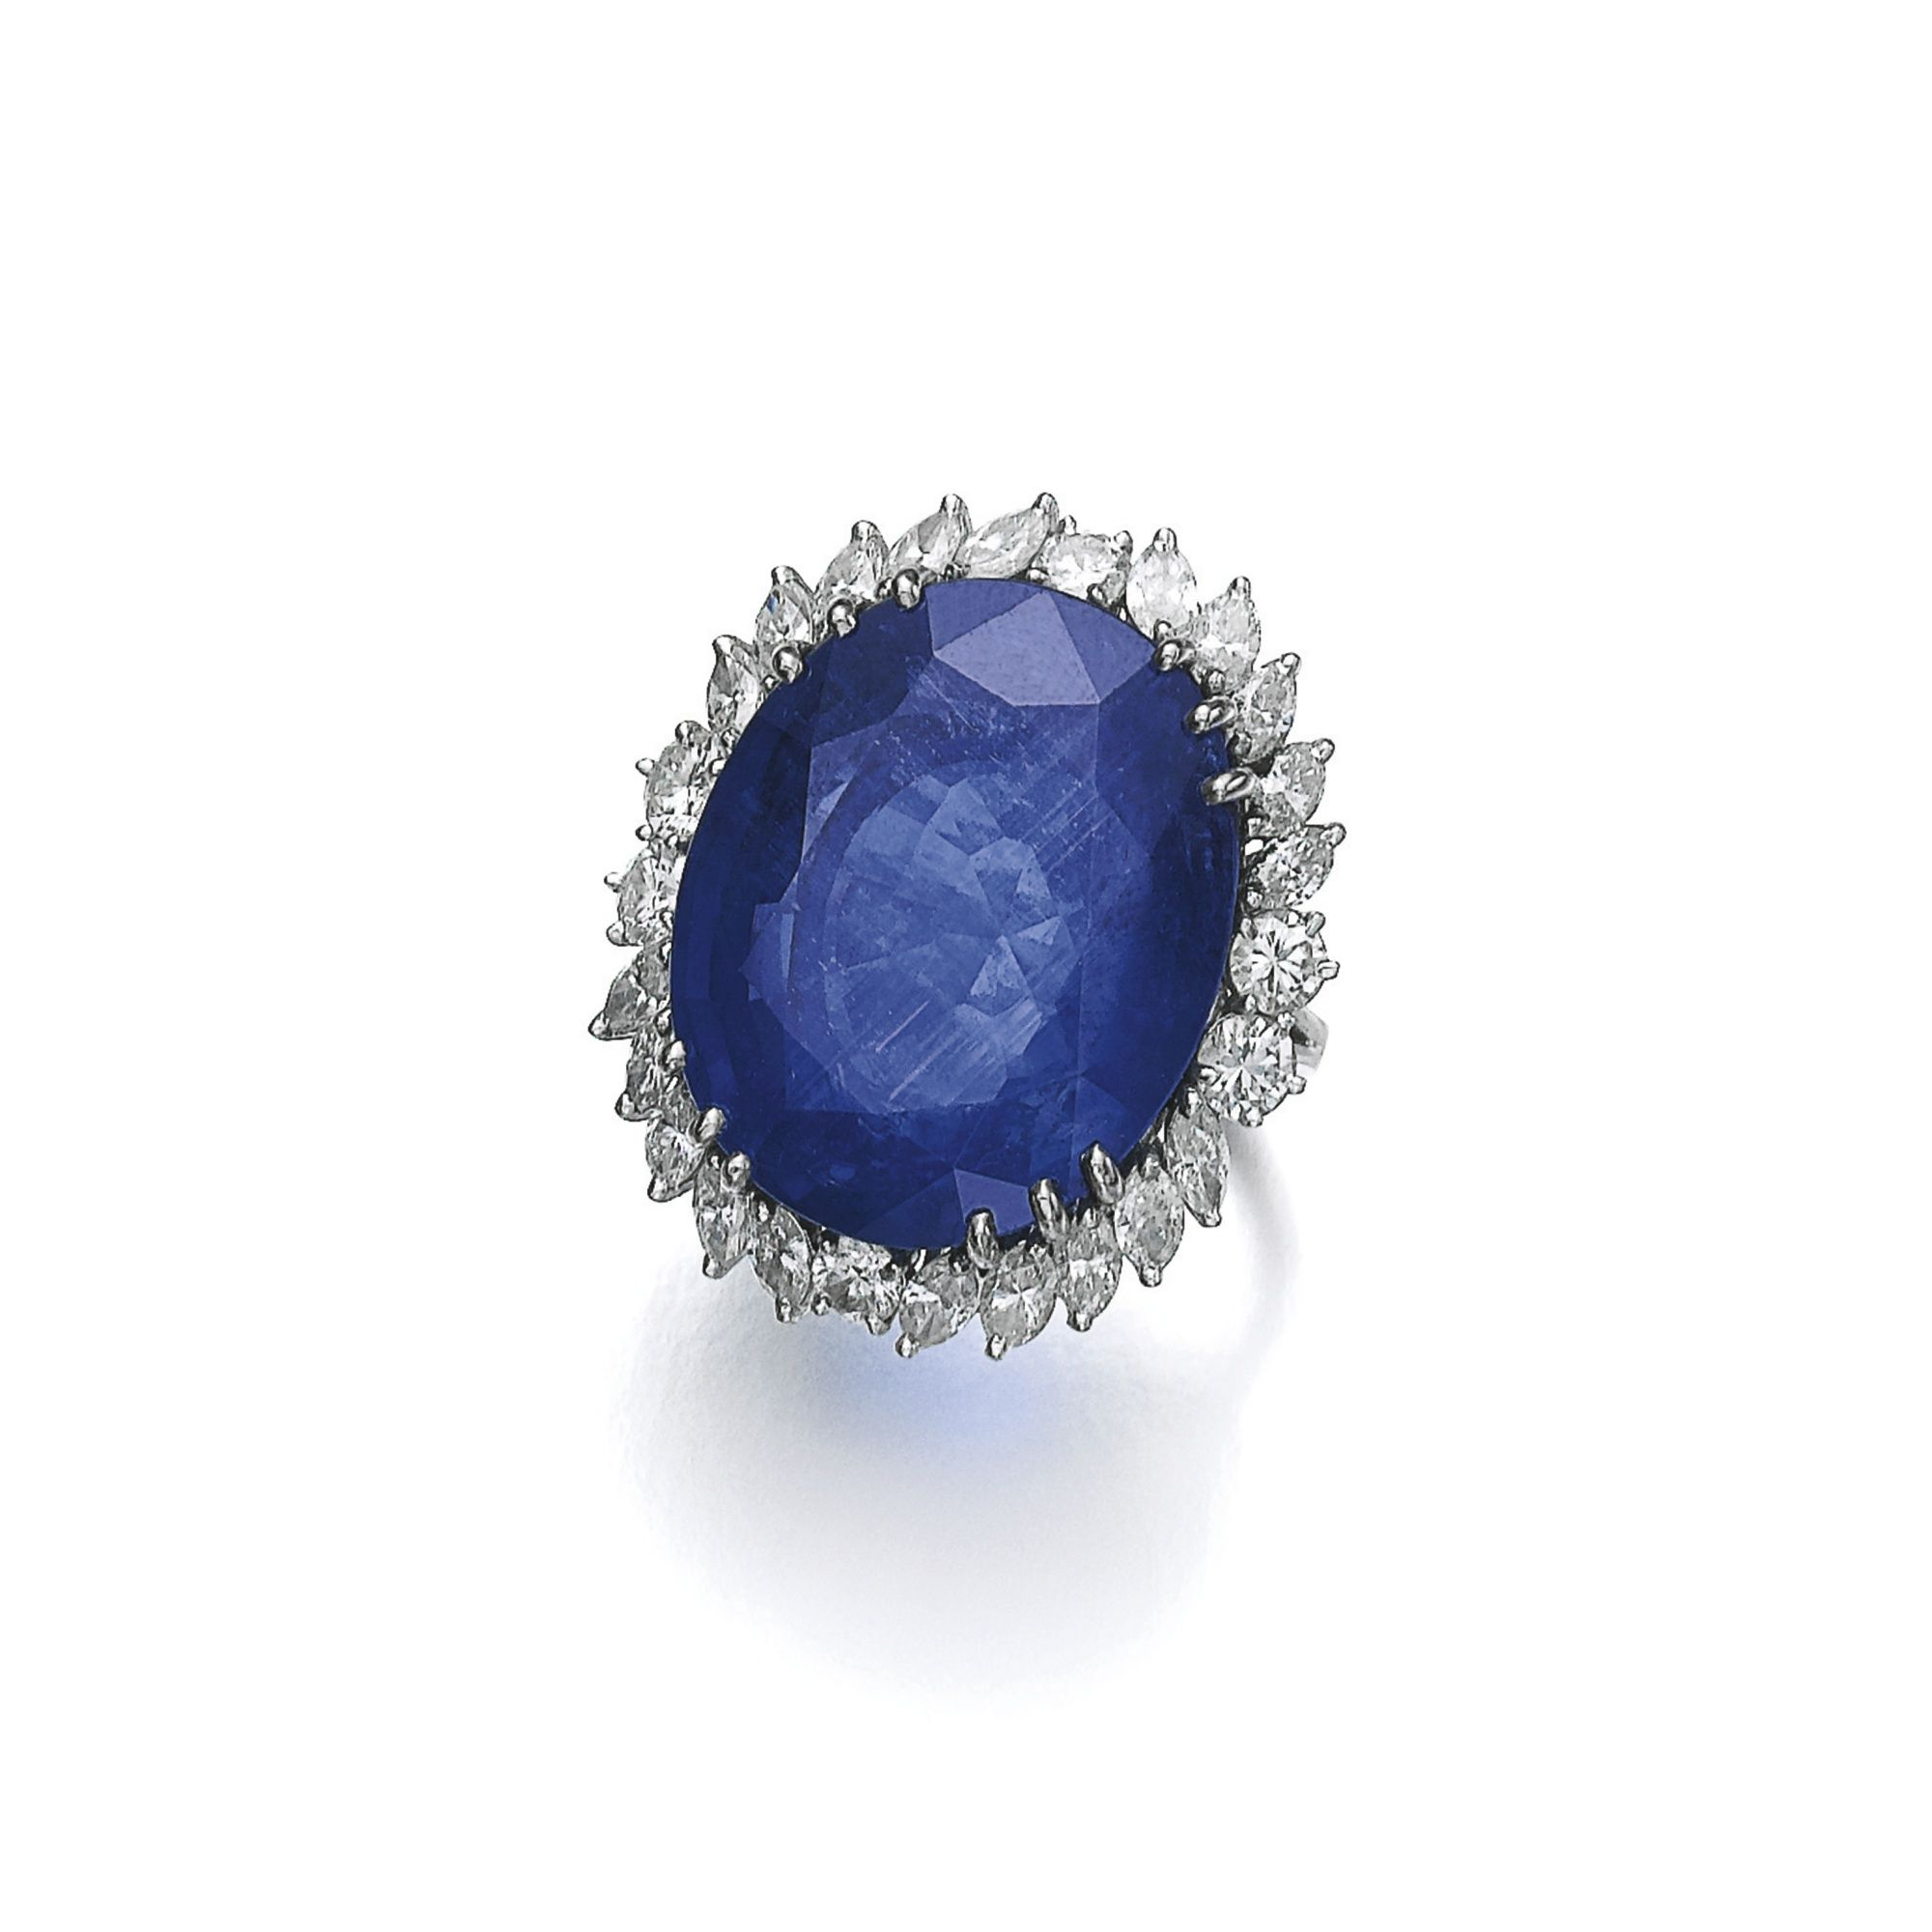 diamond sapphires sapphire index and auctions mogok significant oval at public carat ring burma burmese appeared blue shaped that thread